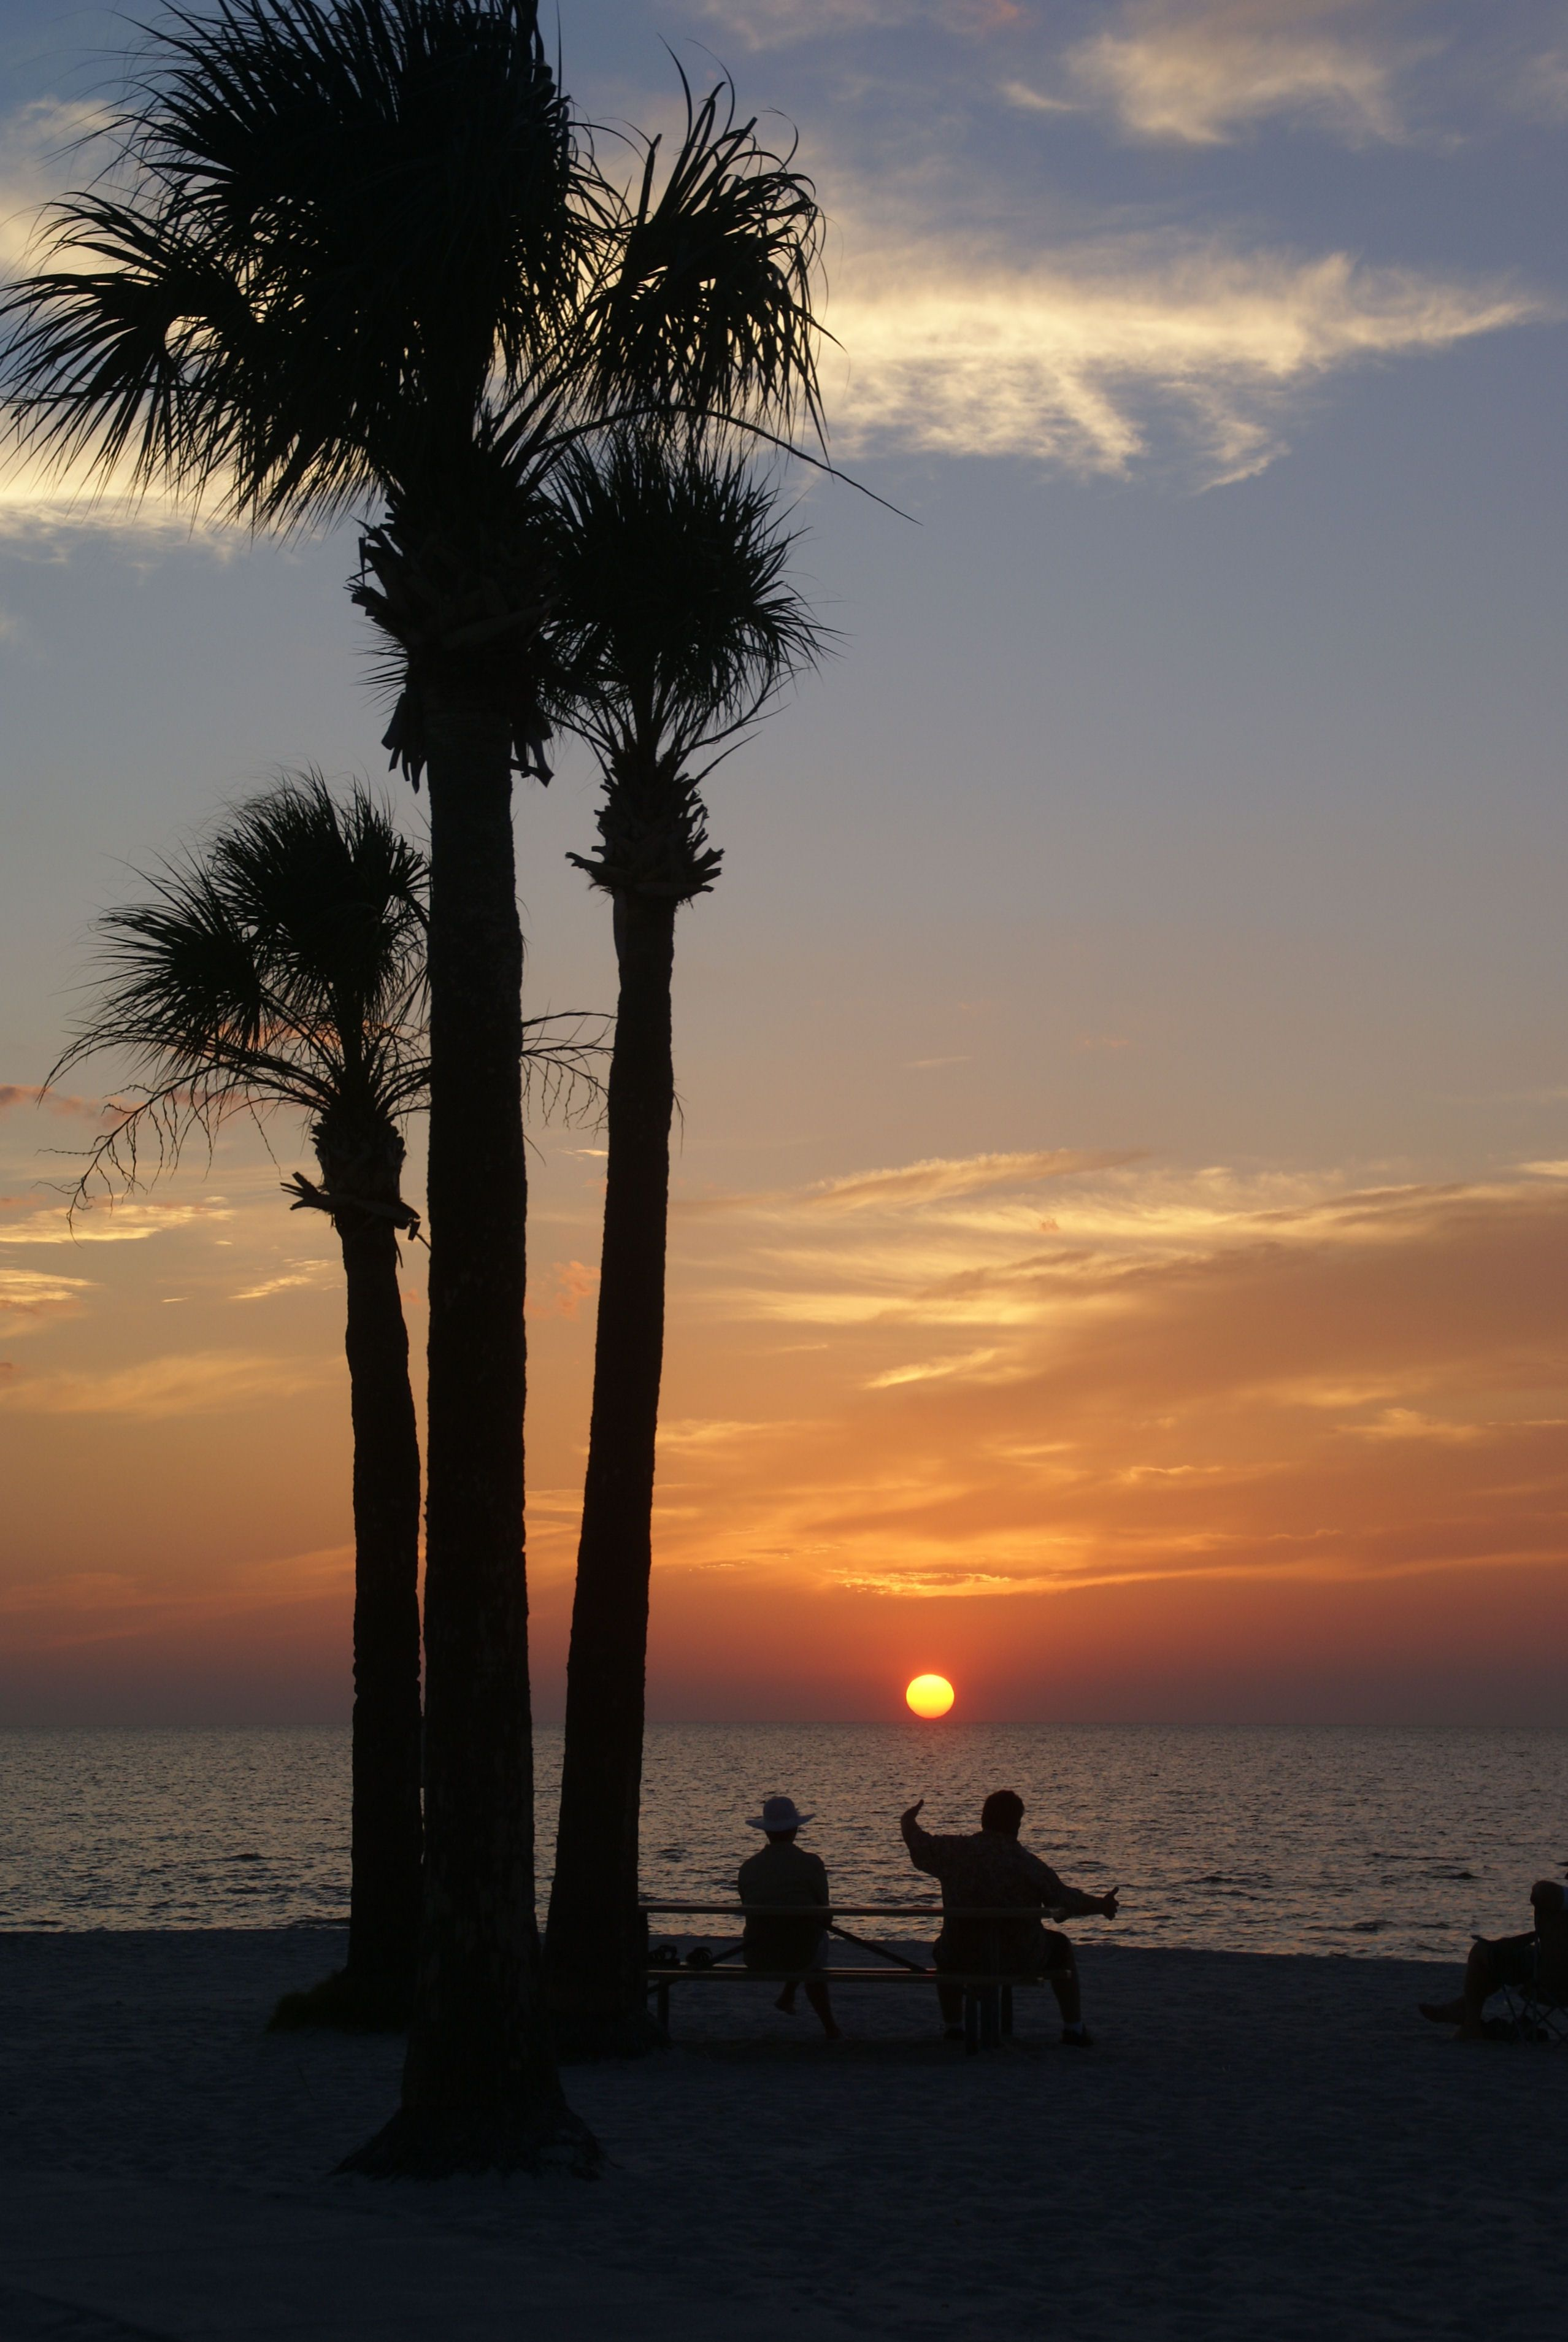 Pine Island Hernando County FL Is A Great Place To Catch Florida SunsetI Will Be Living In